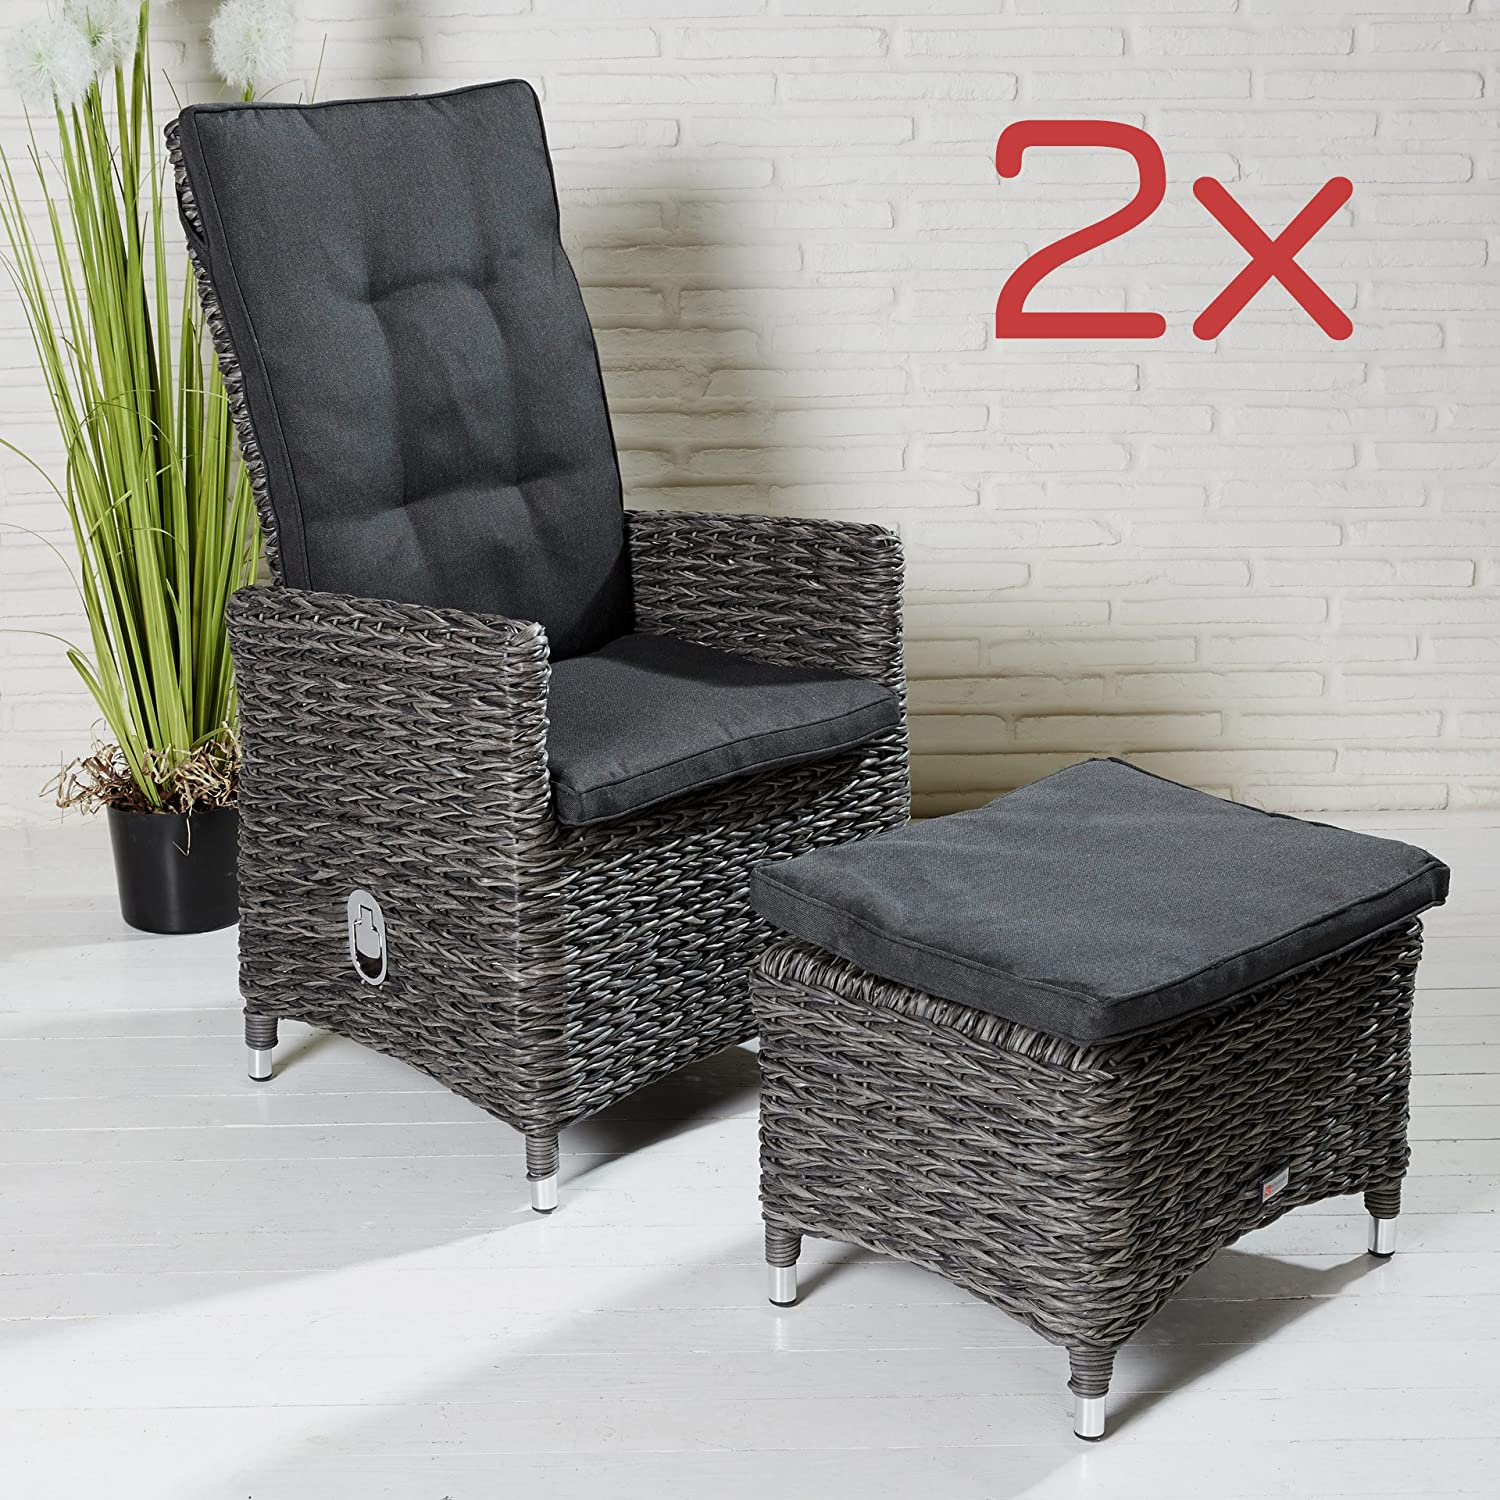 2x set poly rattan gartenstuhl gartensessel stuhl grau mit hocker fu bank sessel g nstig online. Black Bedroom Furniture Sets. Home Design Ideas